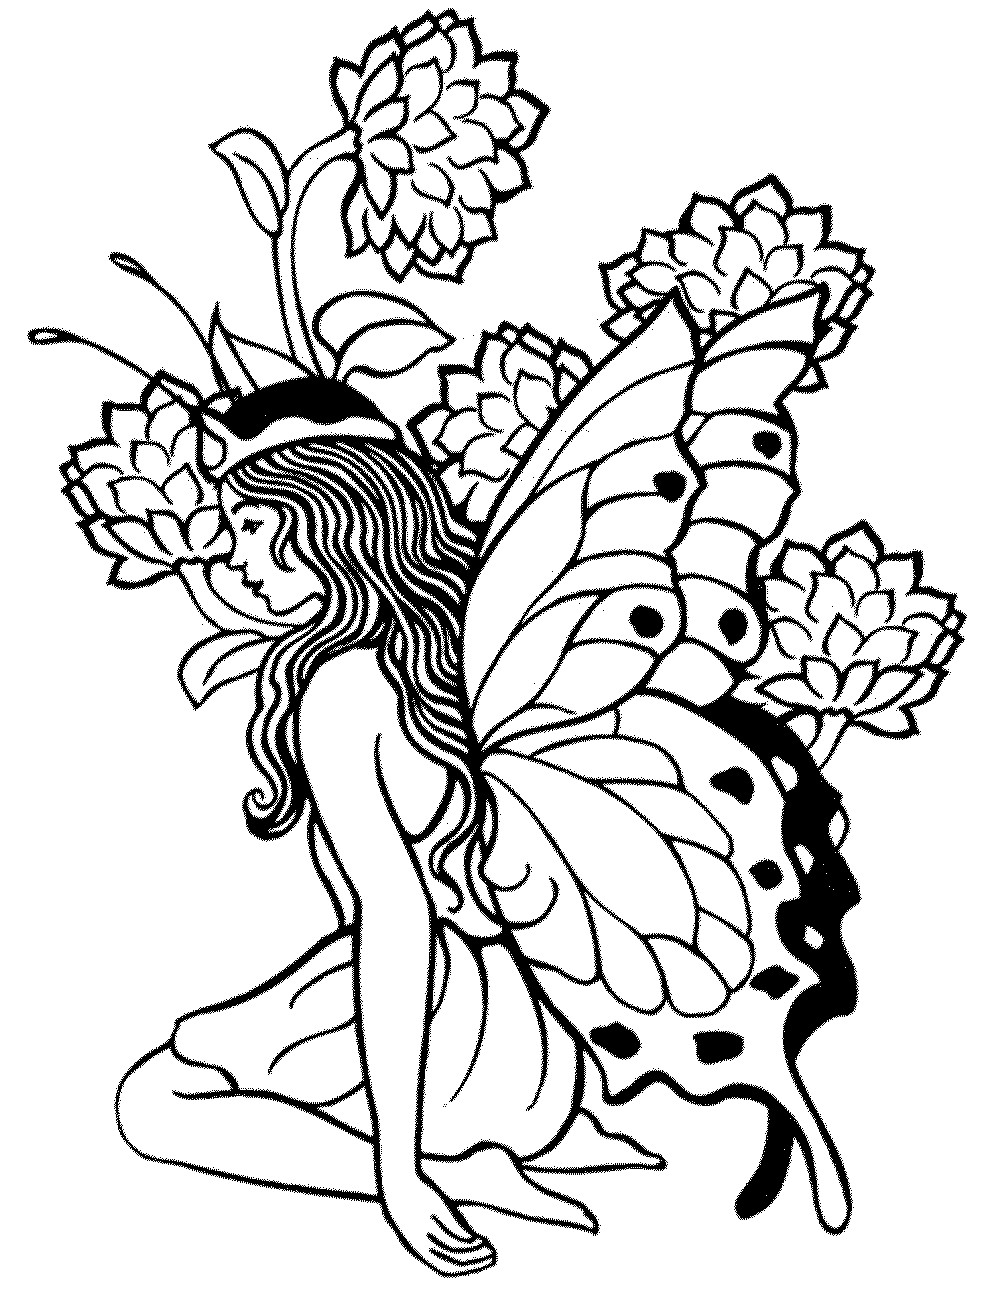 Best ideas about Free Printable Coloring Pages For Adults Only . Save or Pin Free Coloring Pages For Adults Printable Detailed Image 23 Now.